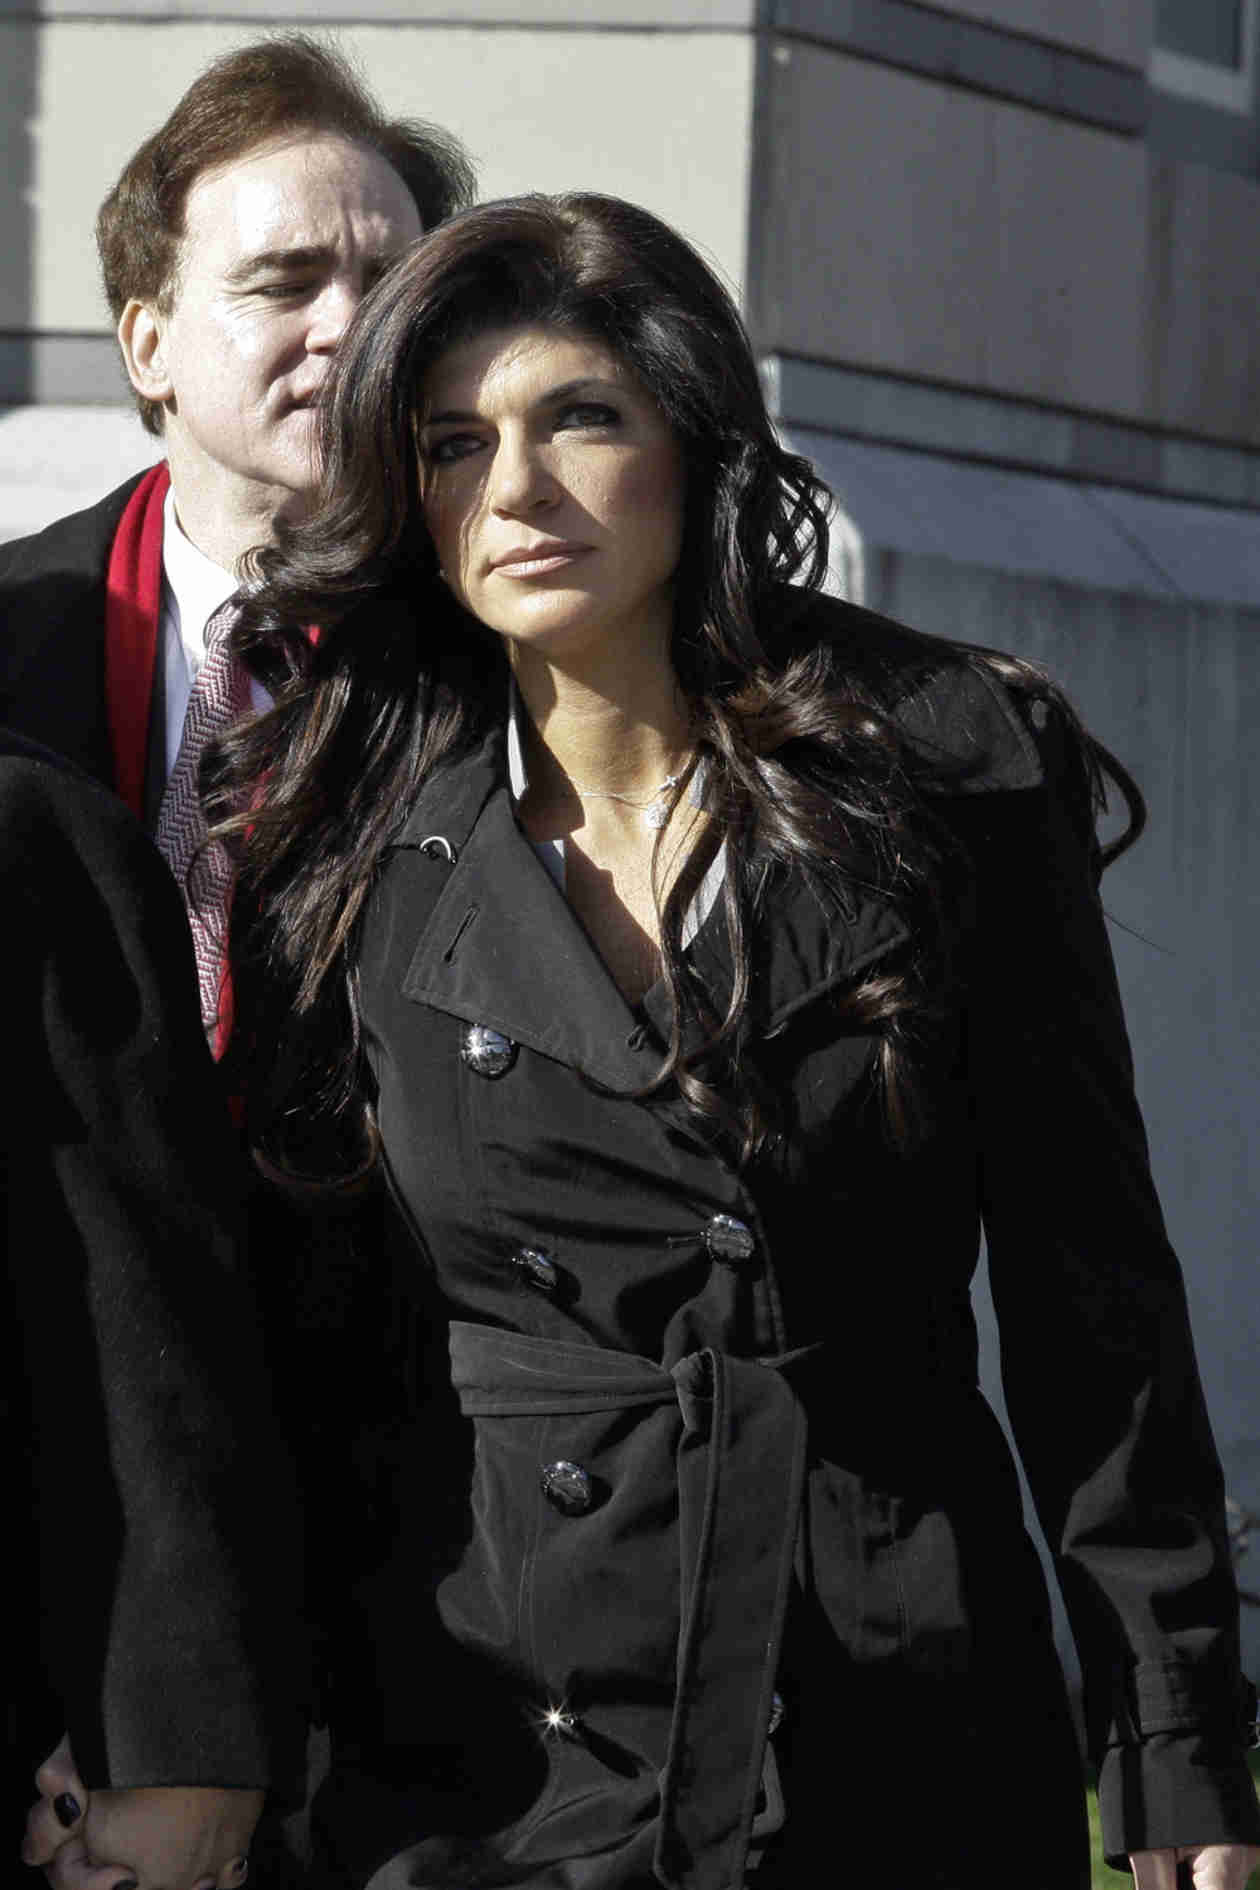 Is Teresa Giudice Confident She Won't Go to Jail? — Report